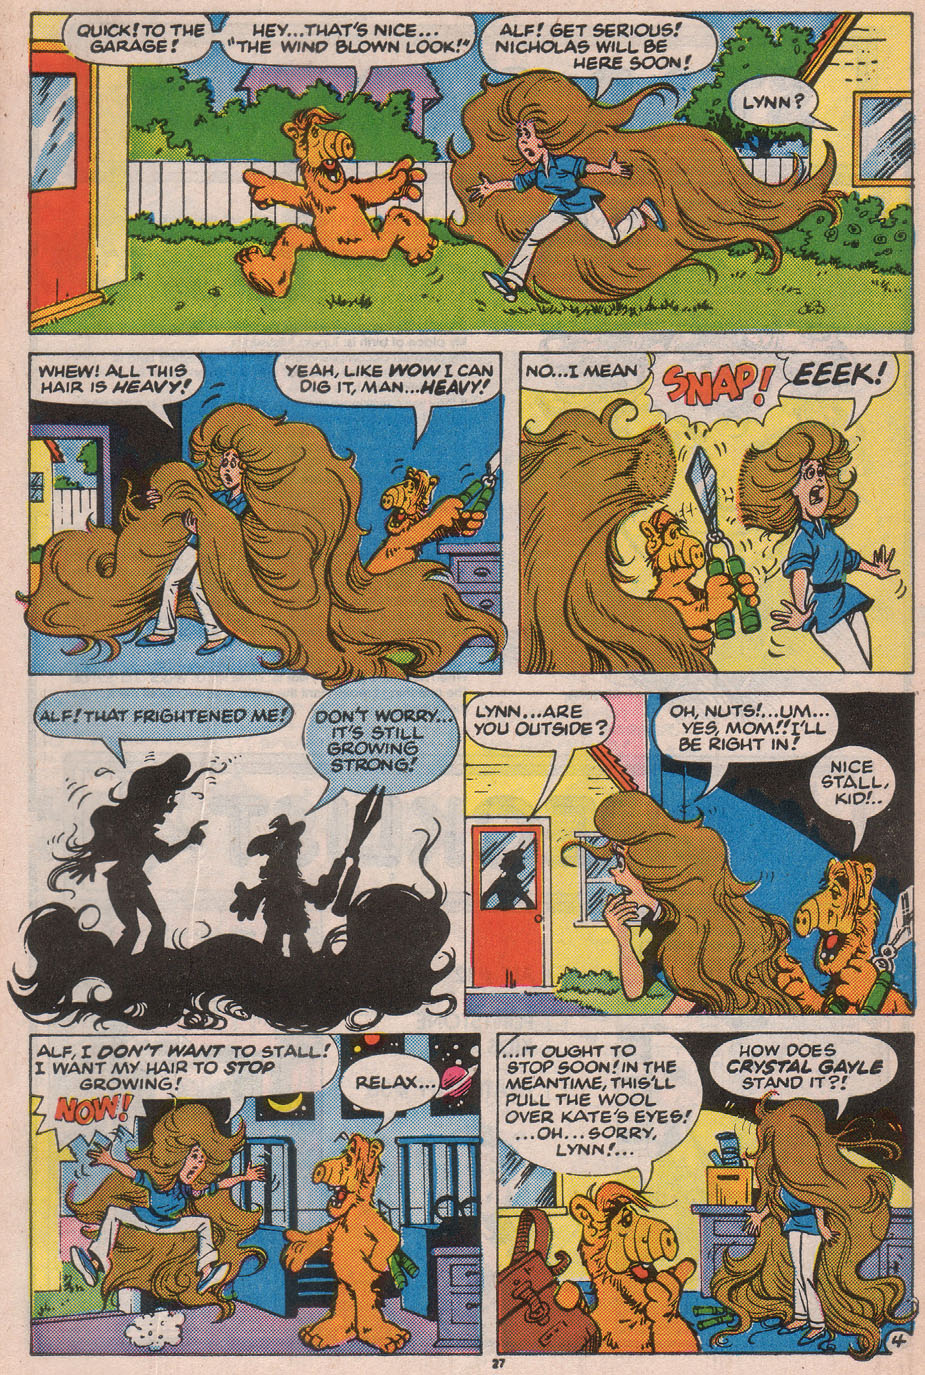 Read online ALF comic -  Issue #12 - 29